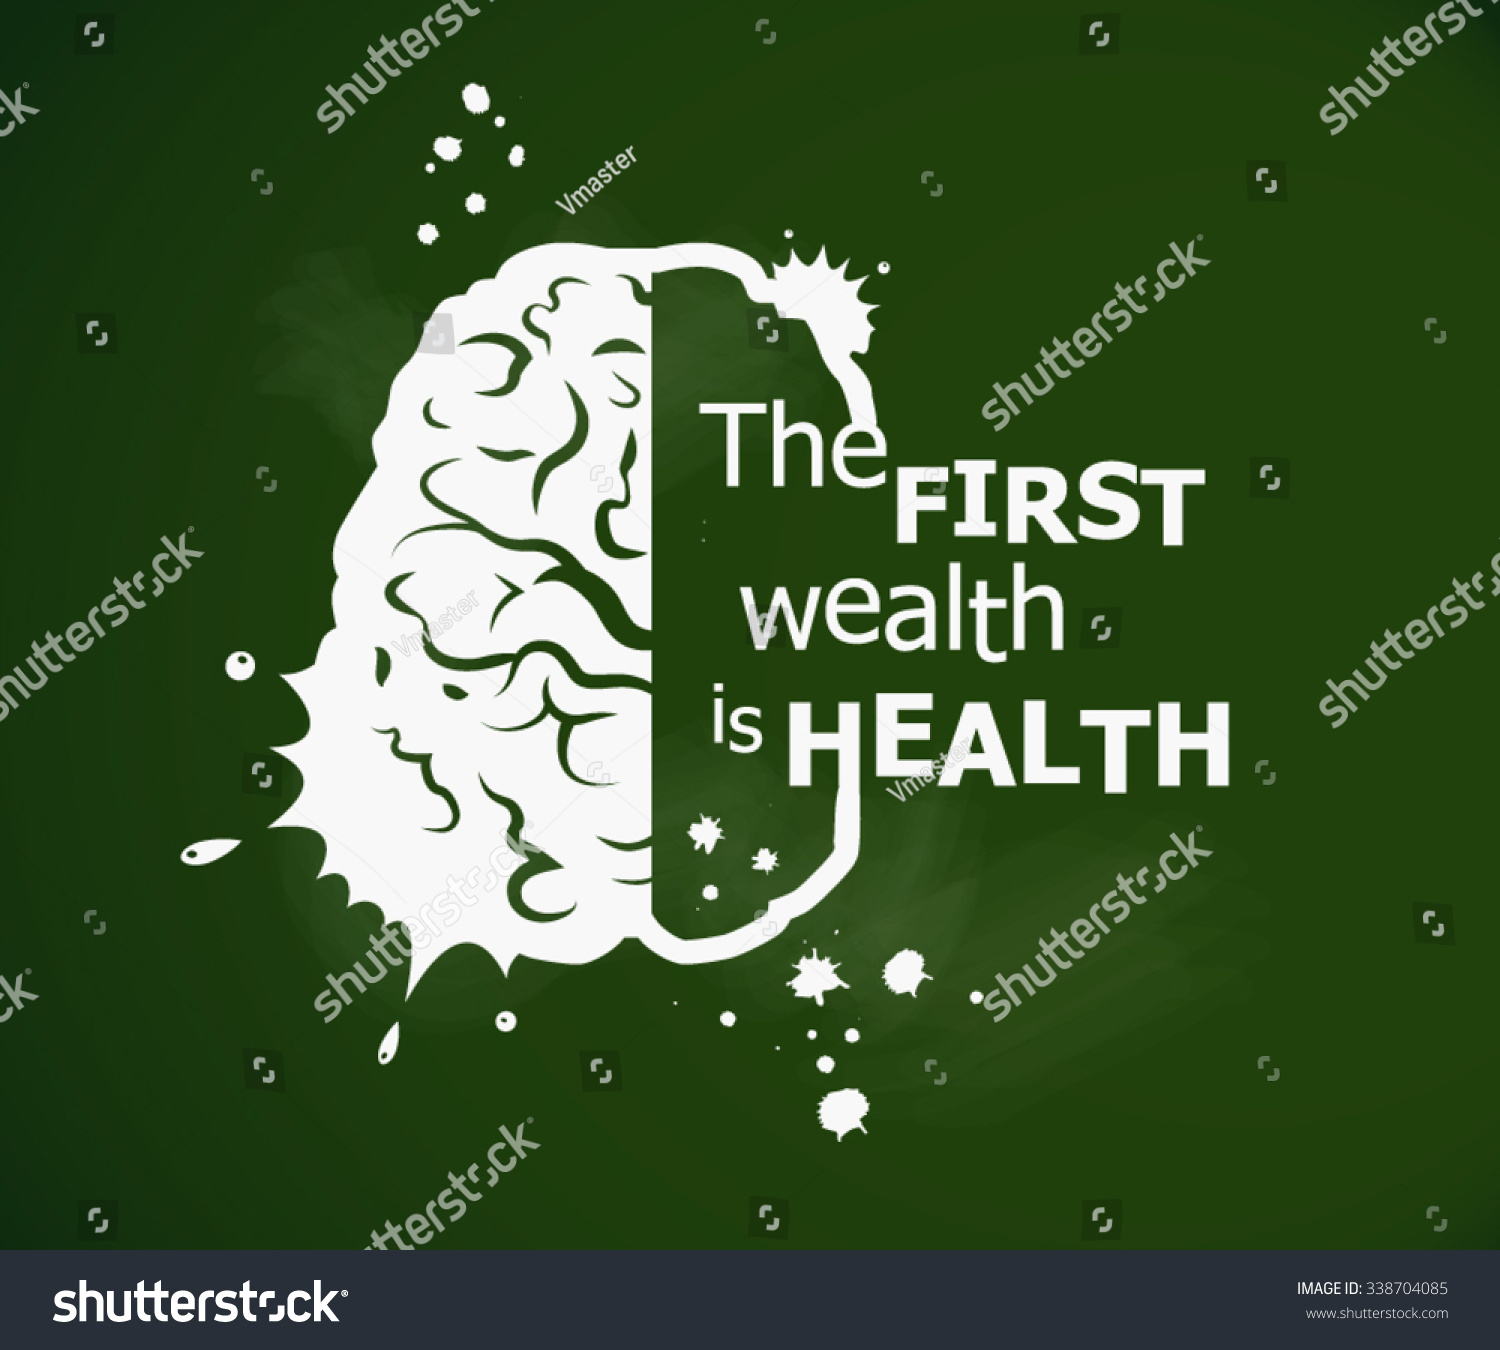 health is wealth essay introduction Commonwealth countries in the interest of public peace, faith, security, health and wealth of mankind in the world besides the commonwealth meetings like that 1055 words.